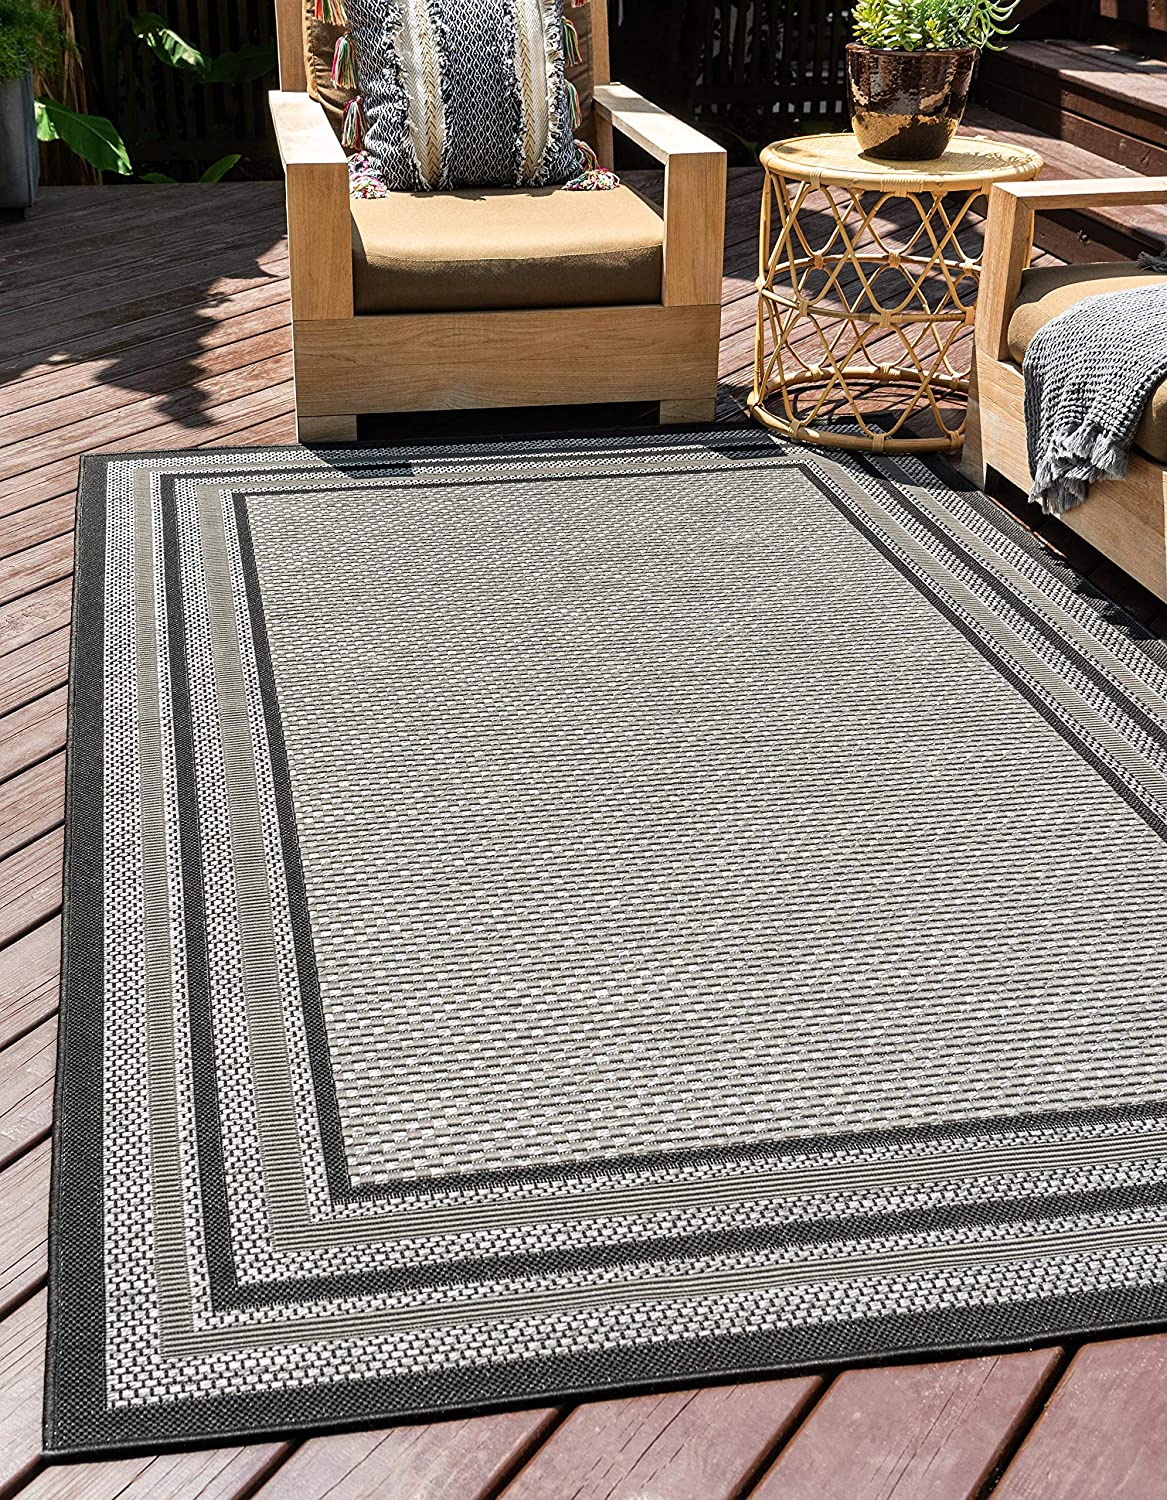 Unique Loom Outdoor Border Collection Solid Casual Transitional Indoor and Outdoor Flatweave Gray Area Rug (3' 3 x 5' 0)